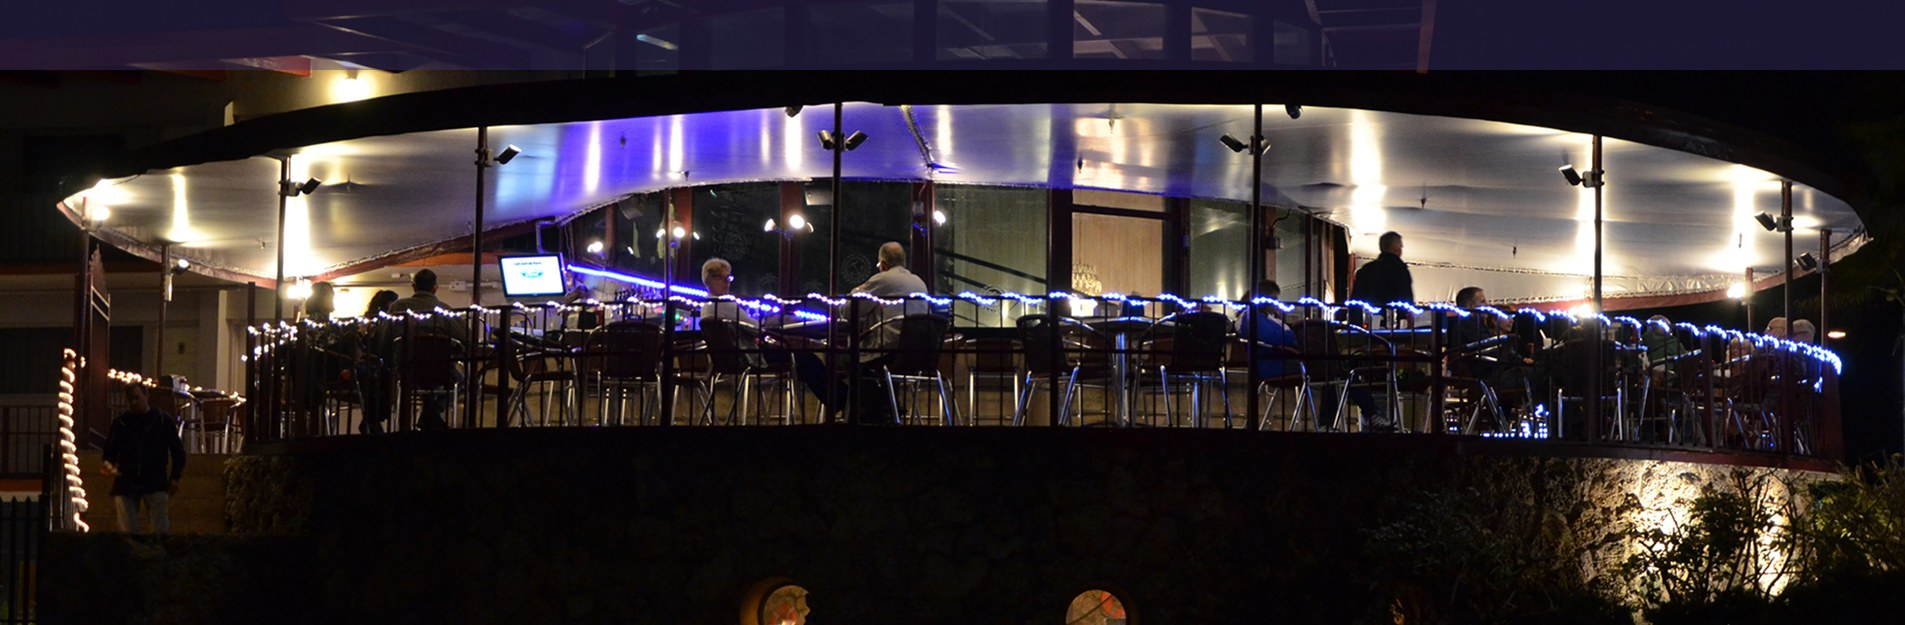 The Deck Restaurant at night